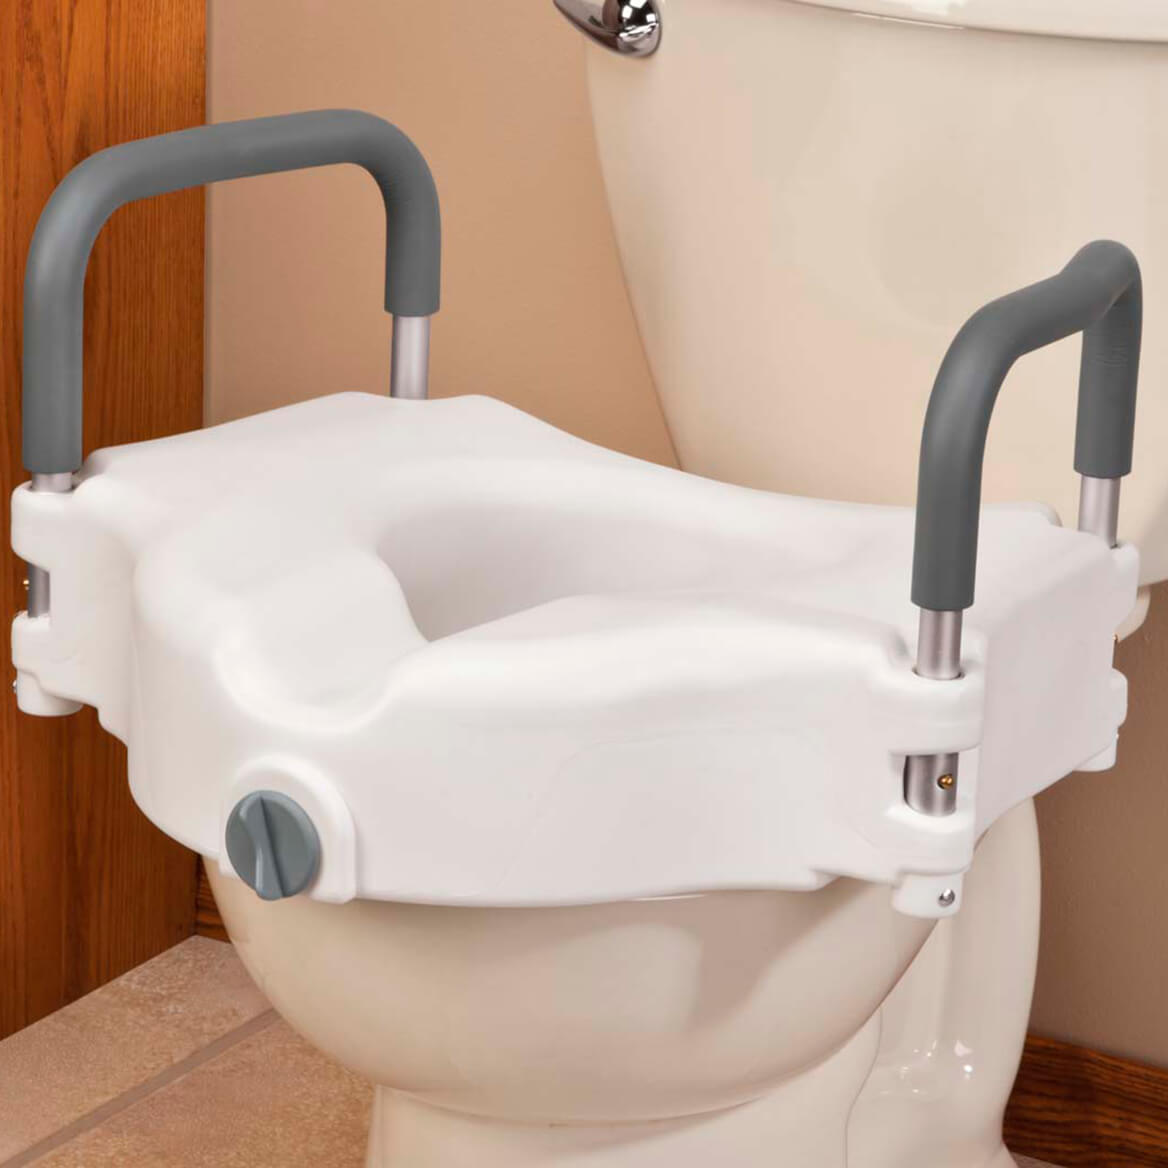 Locking Raised Toilet Seat with Arms           XL-344447